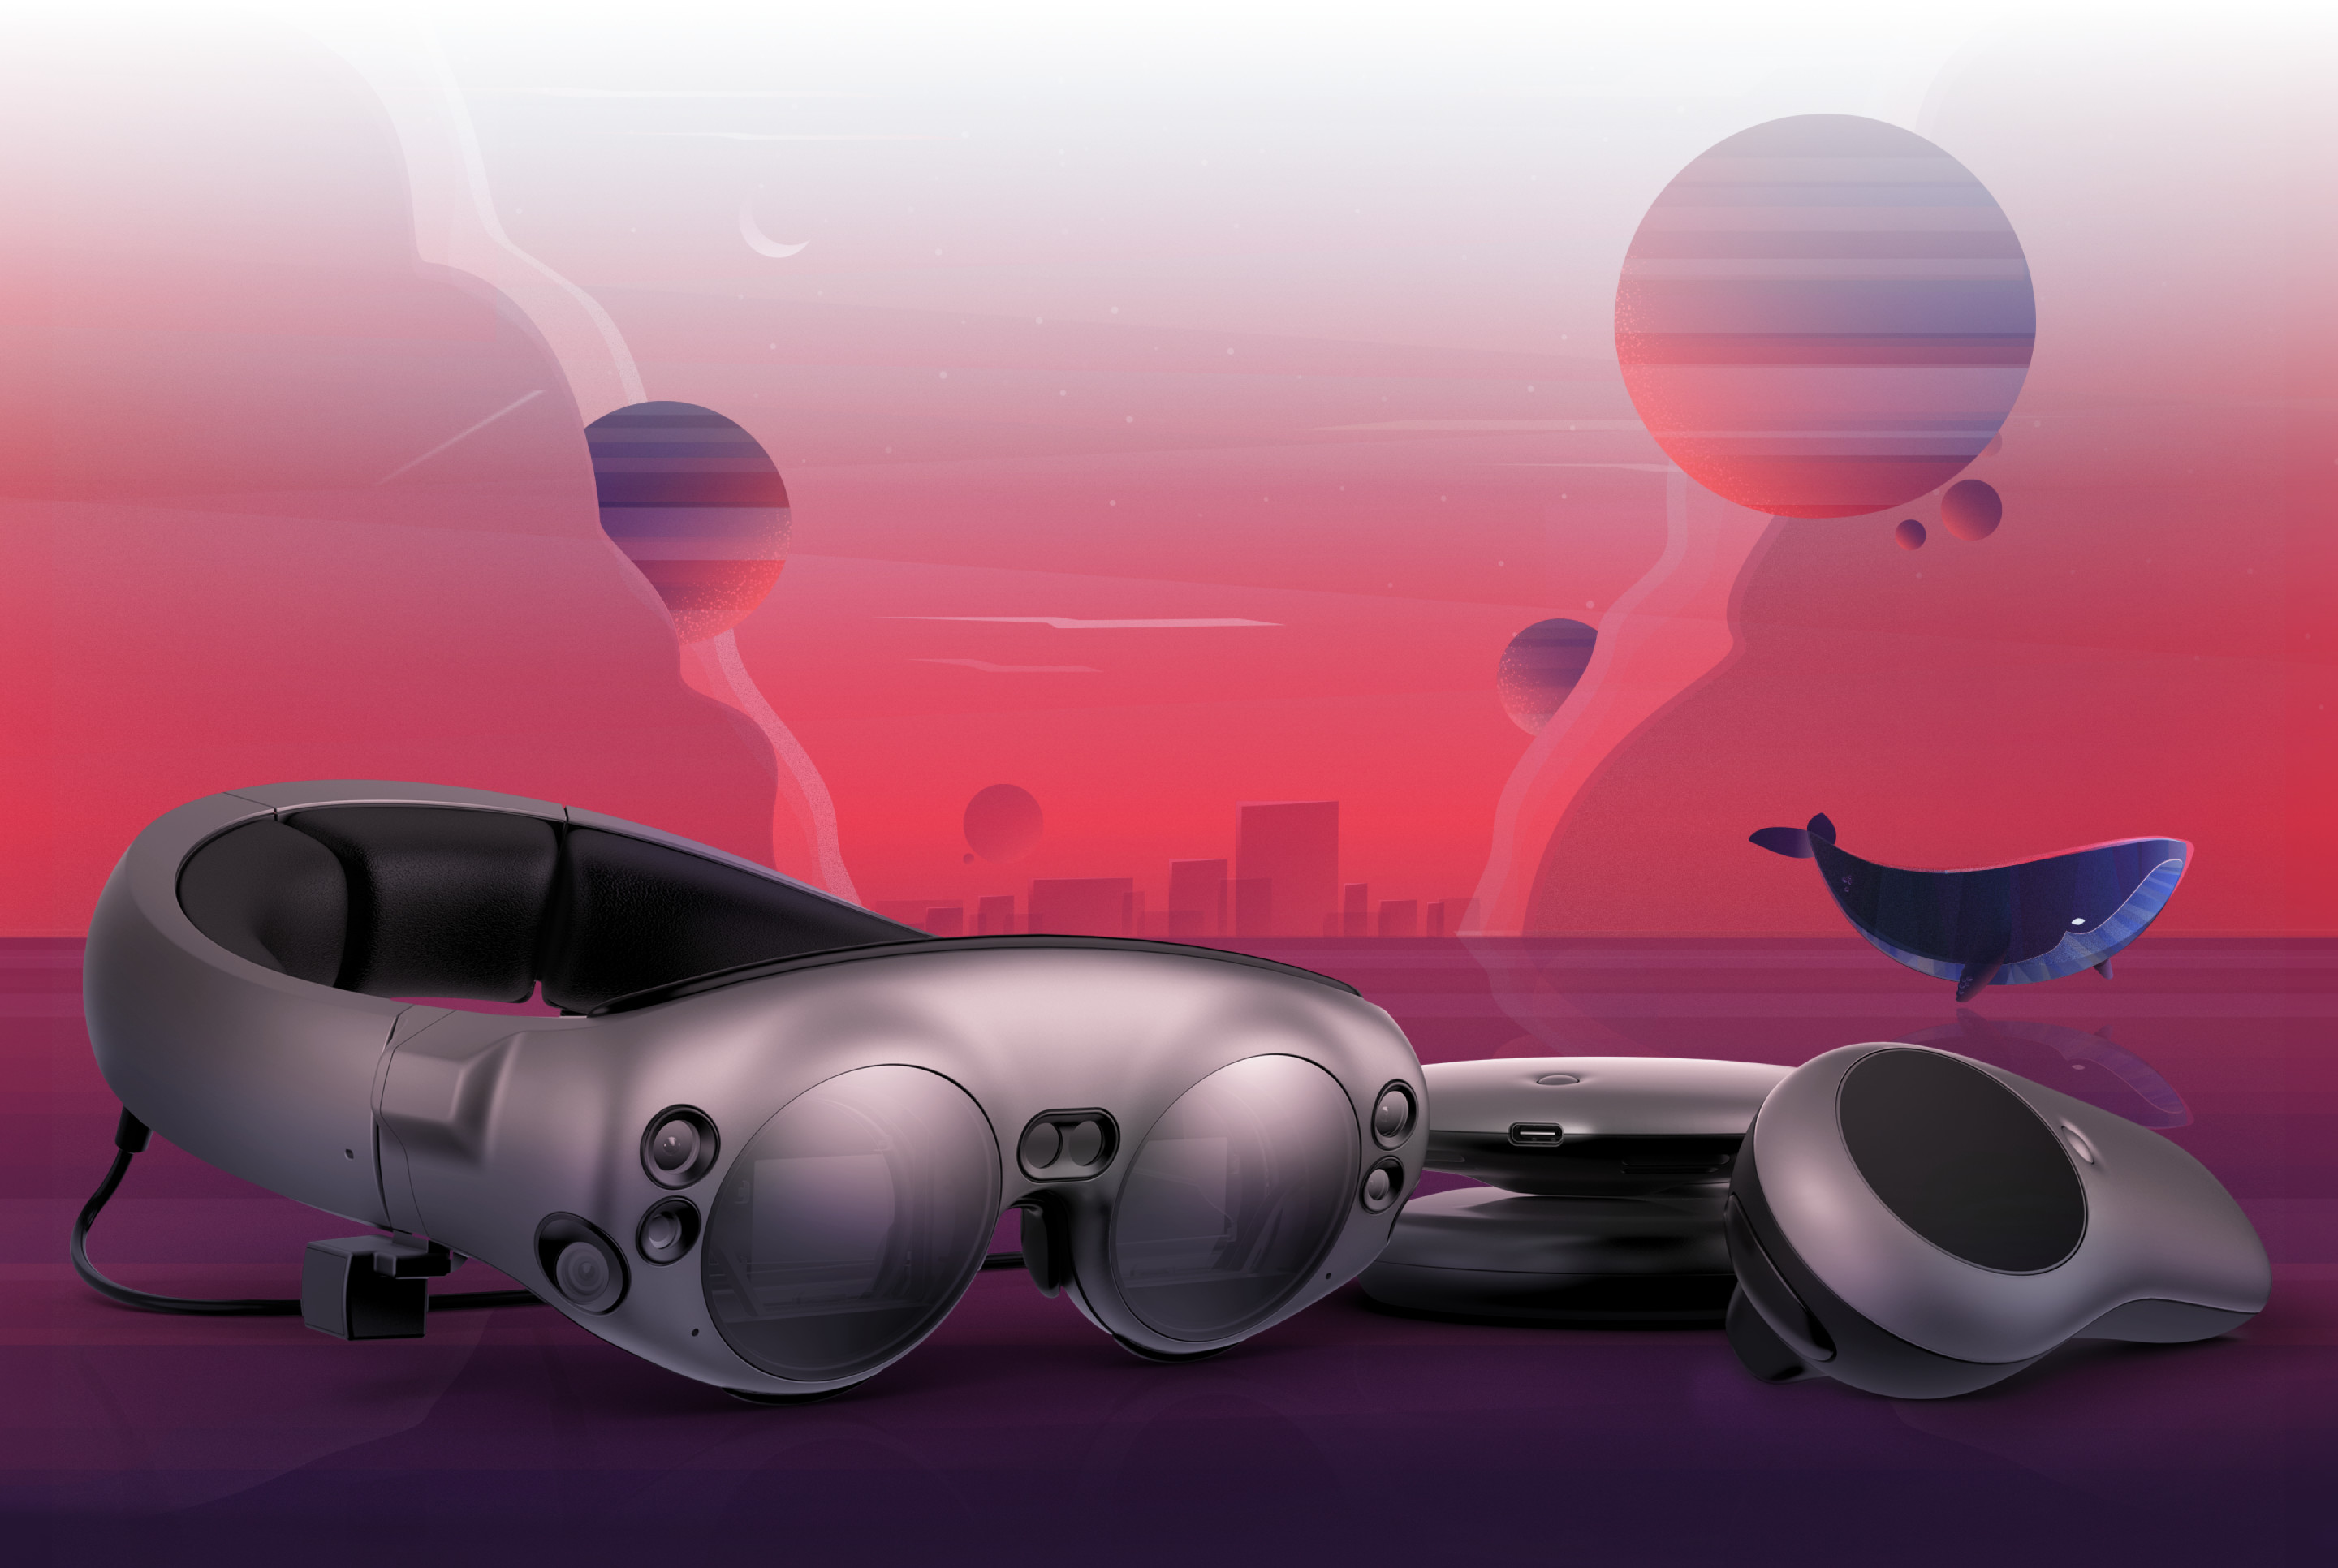 Magic Leap, United States, , Reality, Car, Mixed reality, , Augmented reality, Business, Sales, car, red, car, sky, automotive design, mode of transport, purple, air travel, vehicle, computer wallpaper, technology